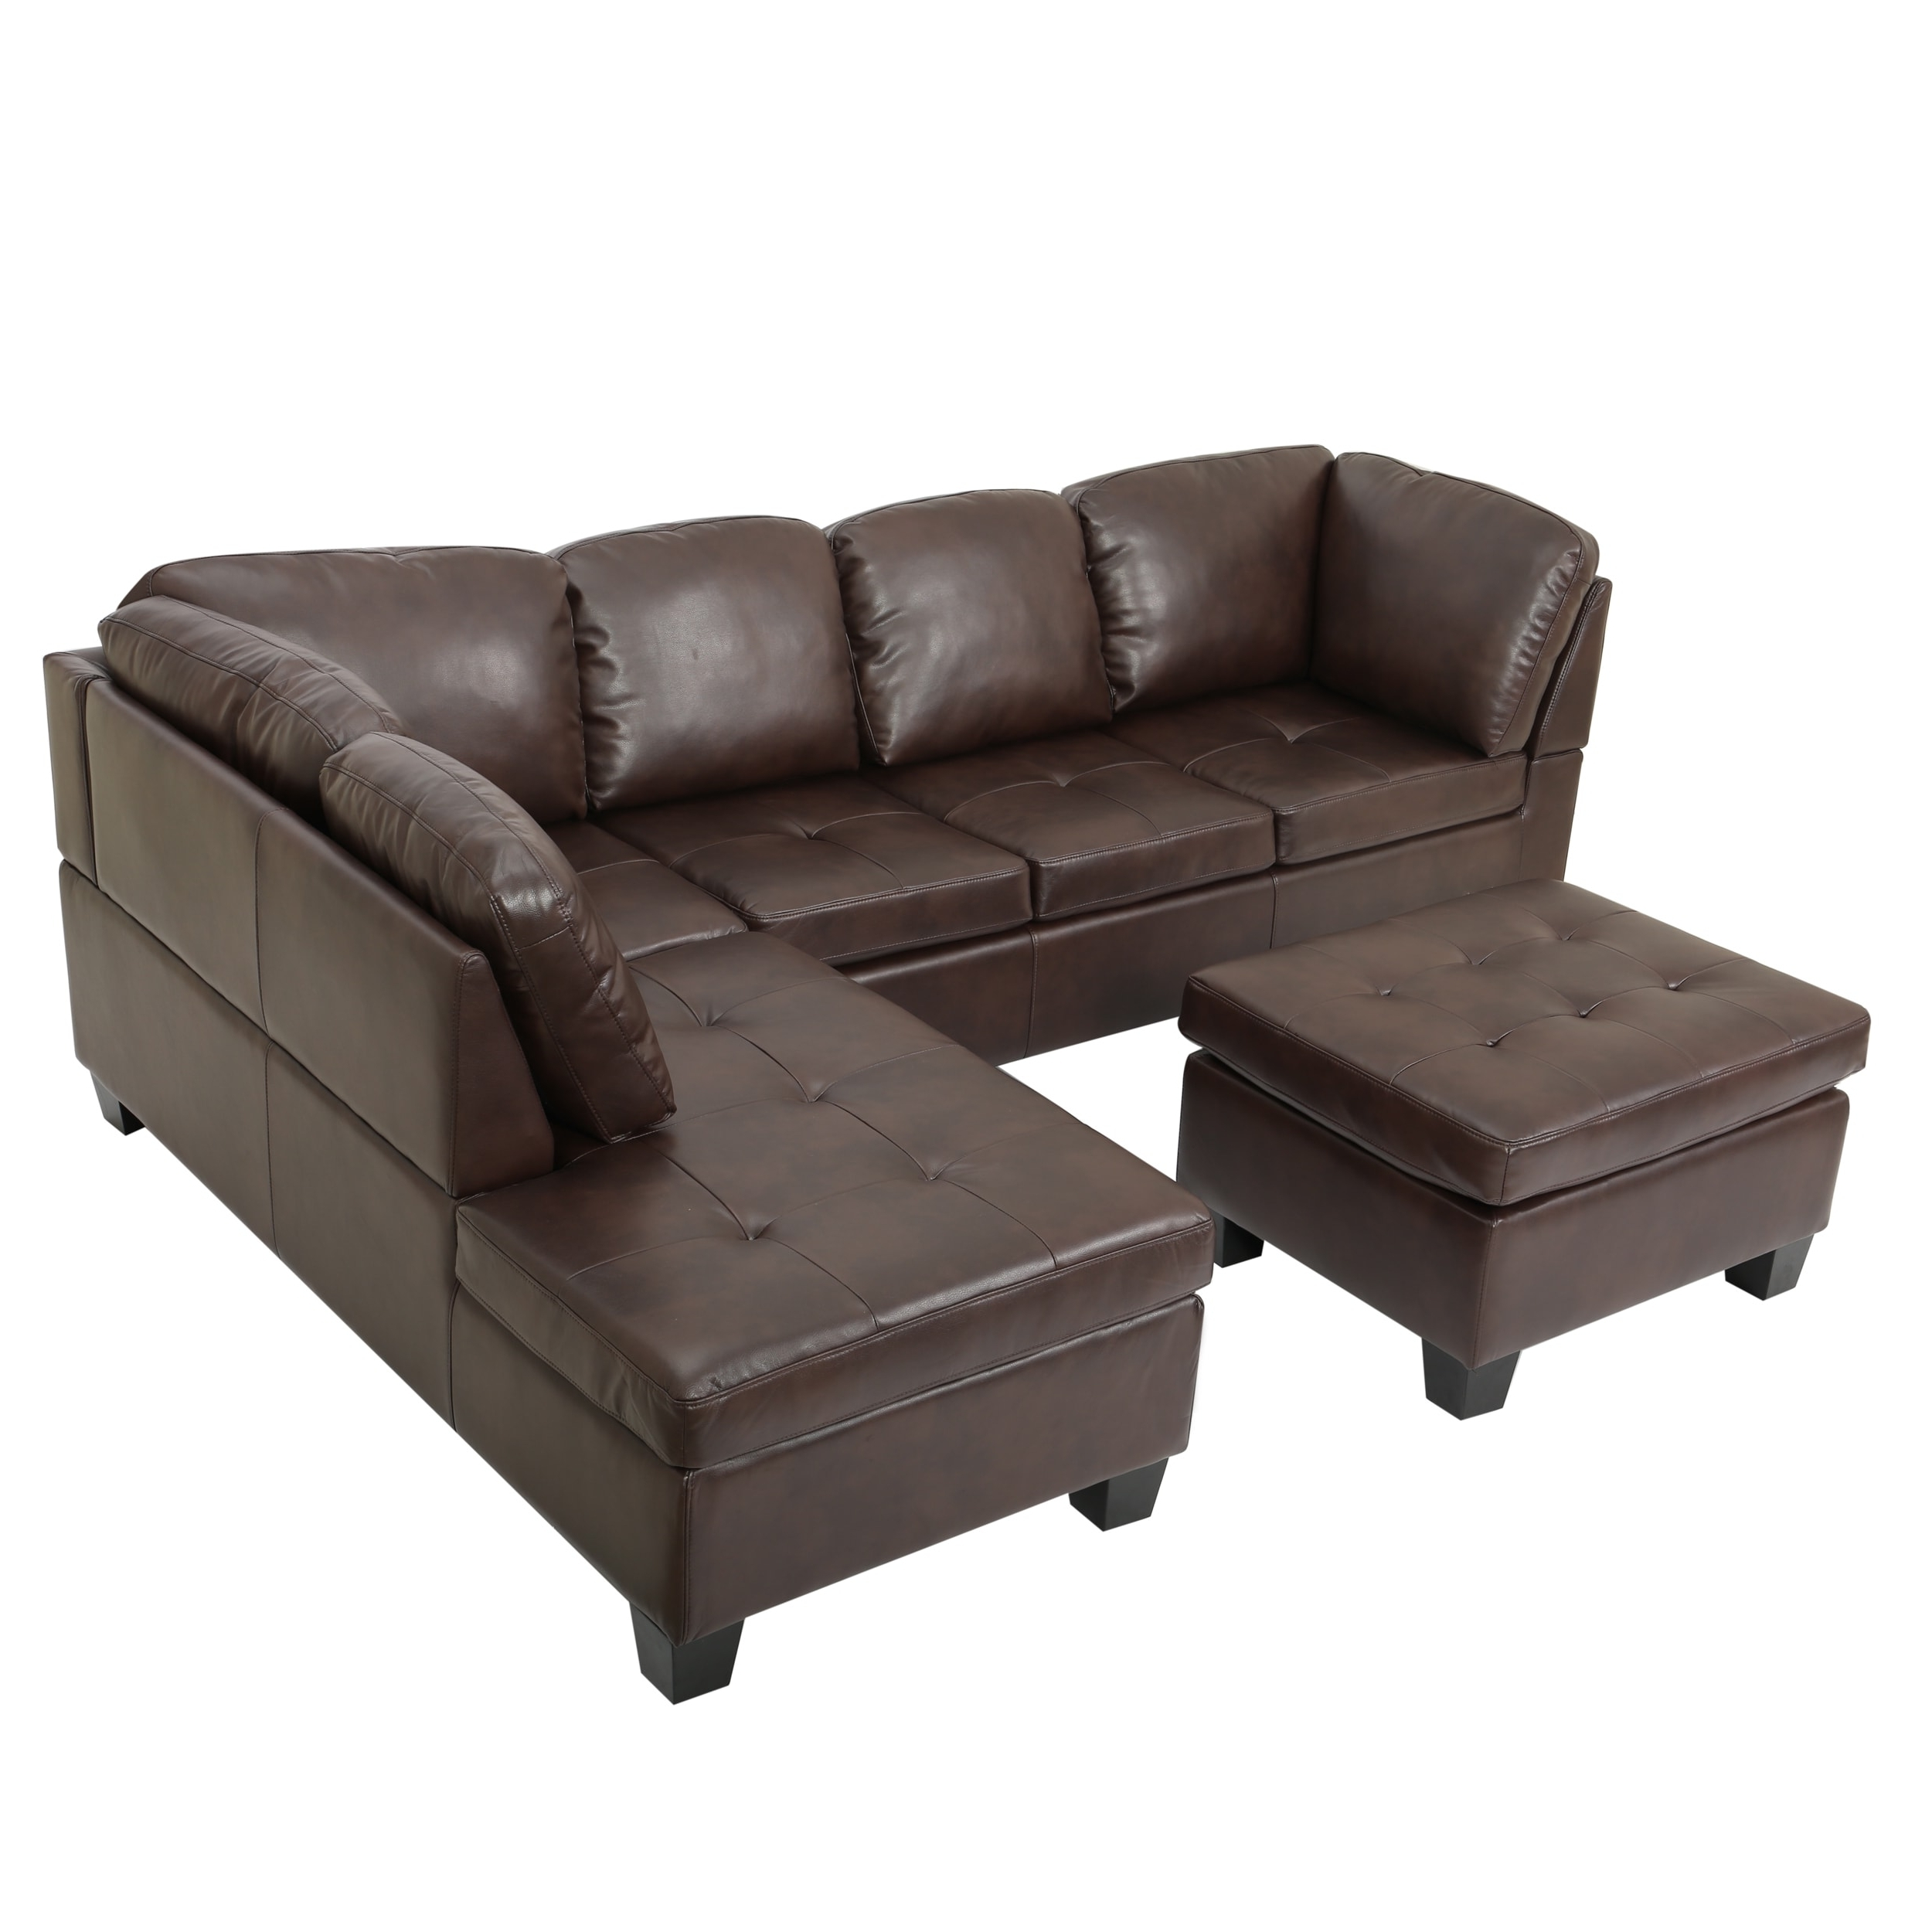 Canterbury 3 Piece Pu Leather Sectional Sofa Setchristopher Within Widely Used Canterbury Leather Sofas (View 6 of 20)